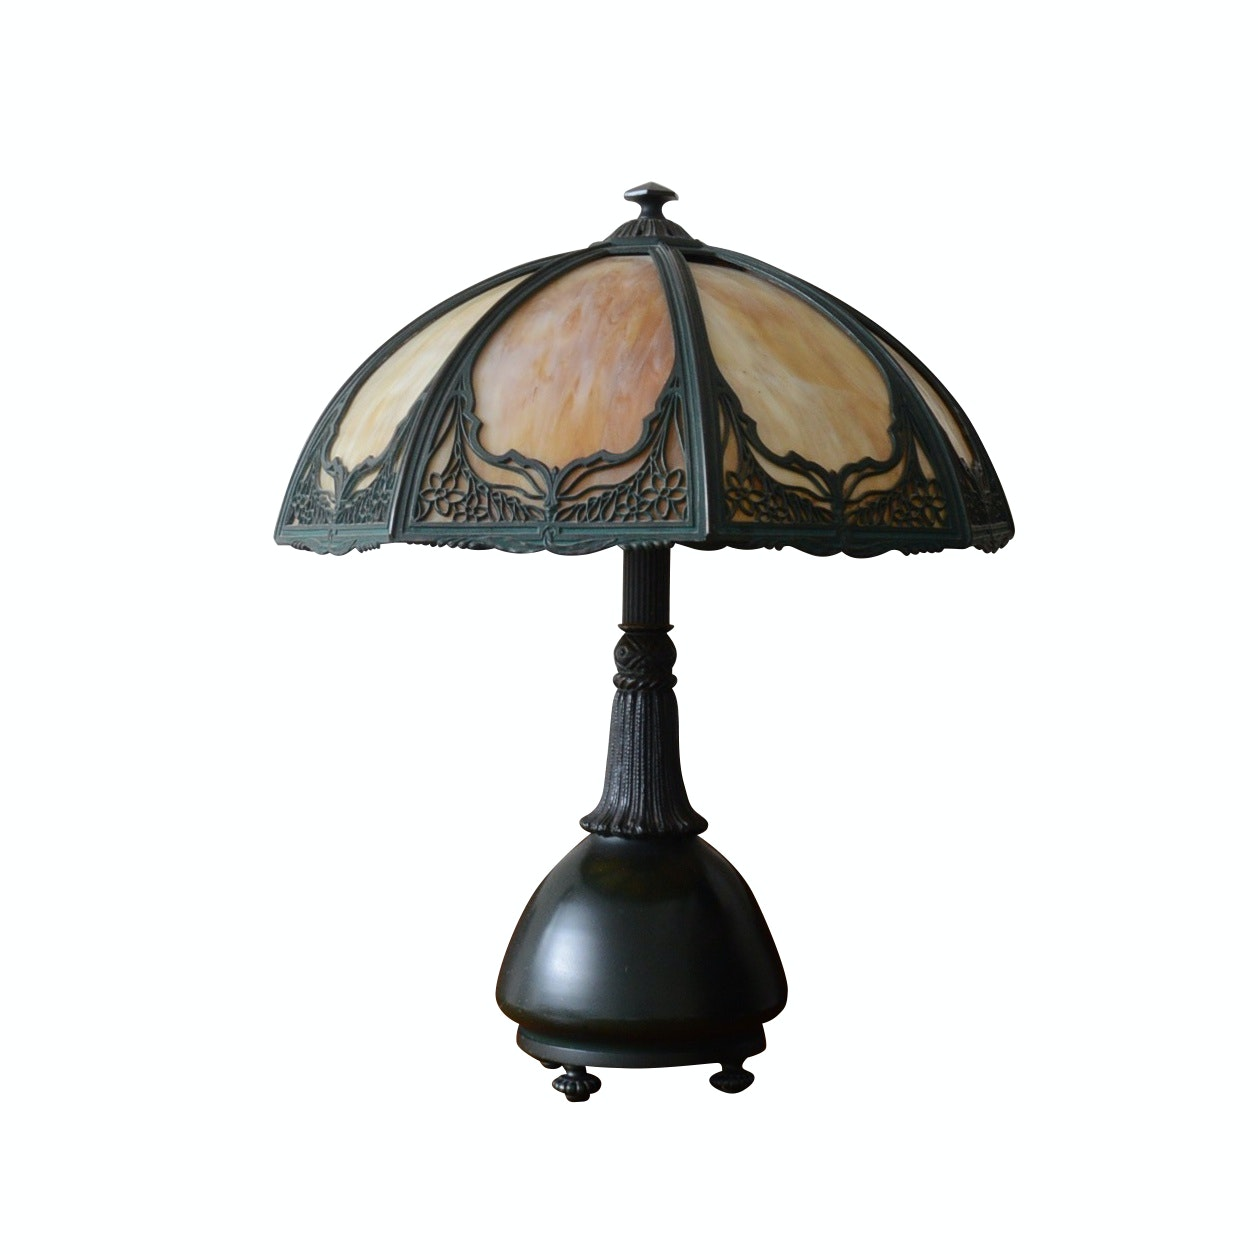 Cast Iron Table Lamp with Overlay Slag Glass Shade Attributed to Iron Works